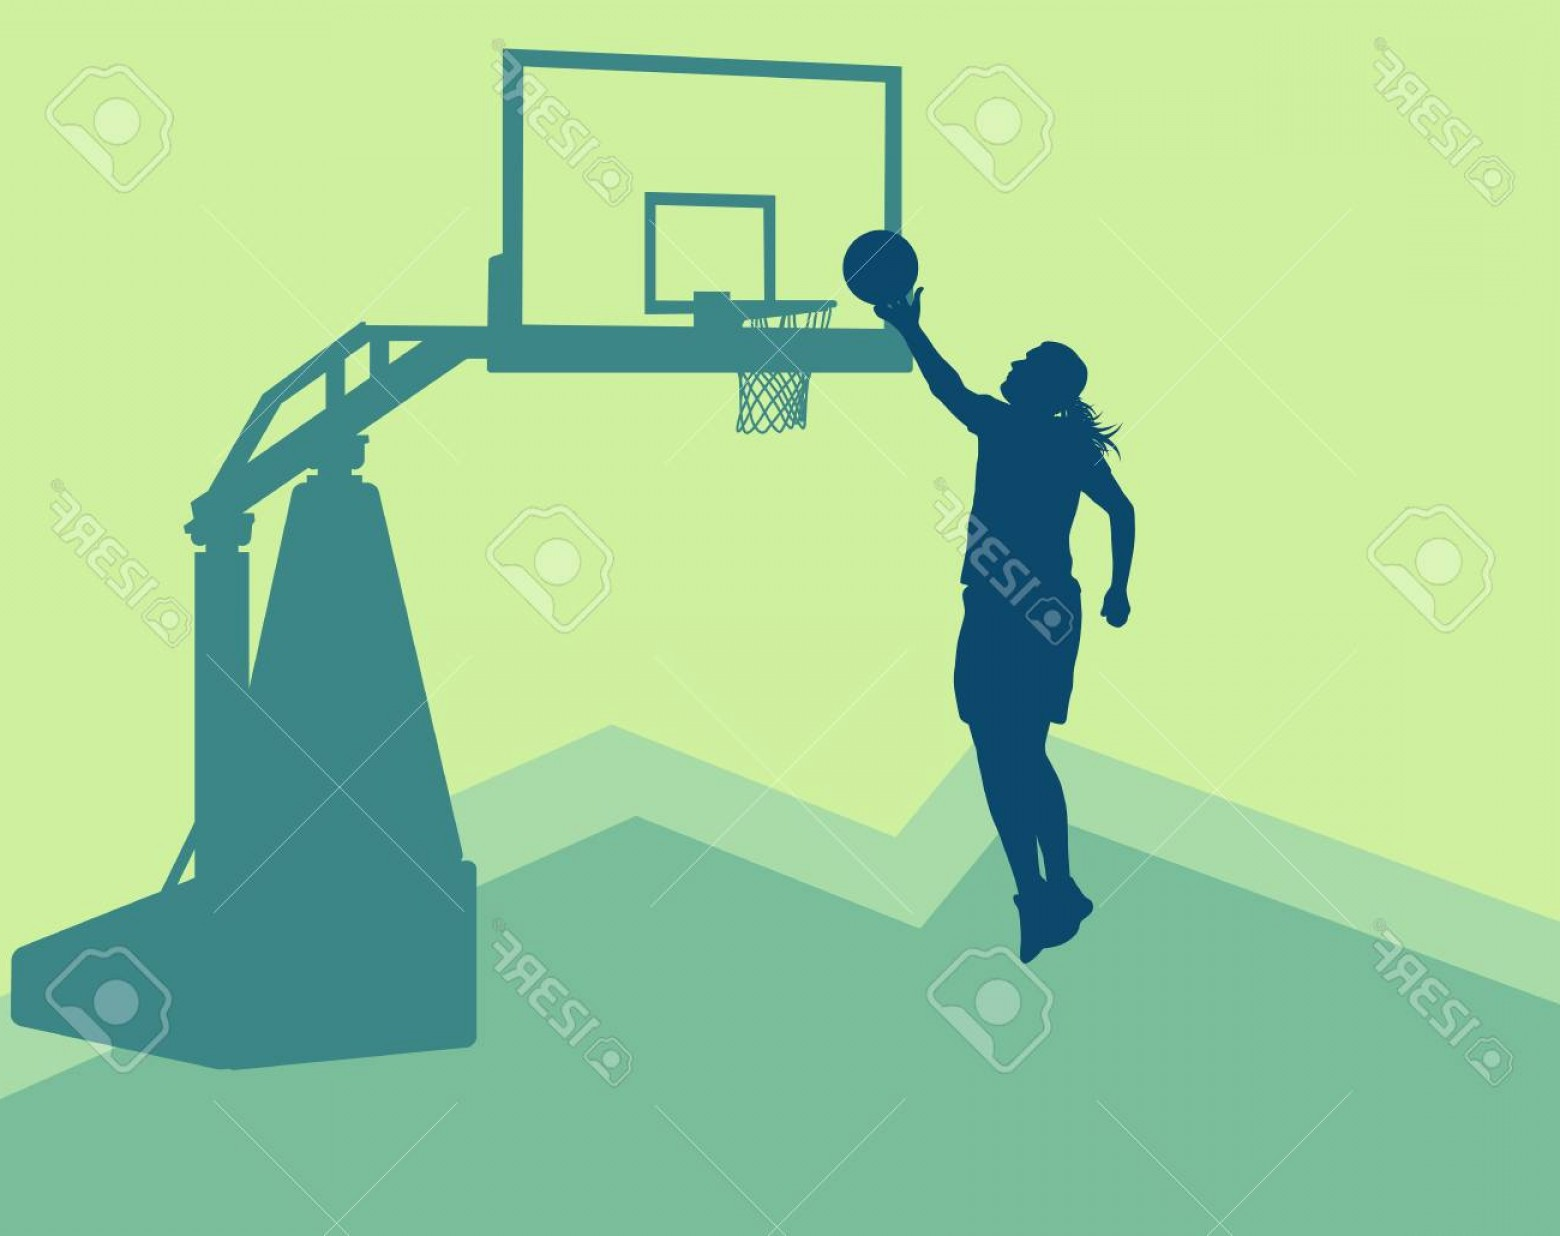 Motion Basketball Vector: Photostock Vector Motion Concept Of A Game In Action With Basketball Hoop Vector Background Basketball Woman